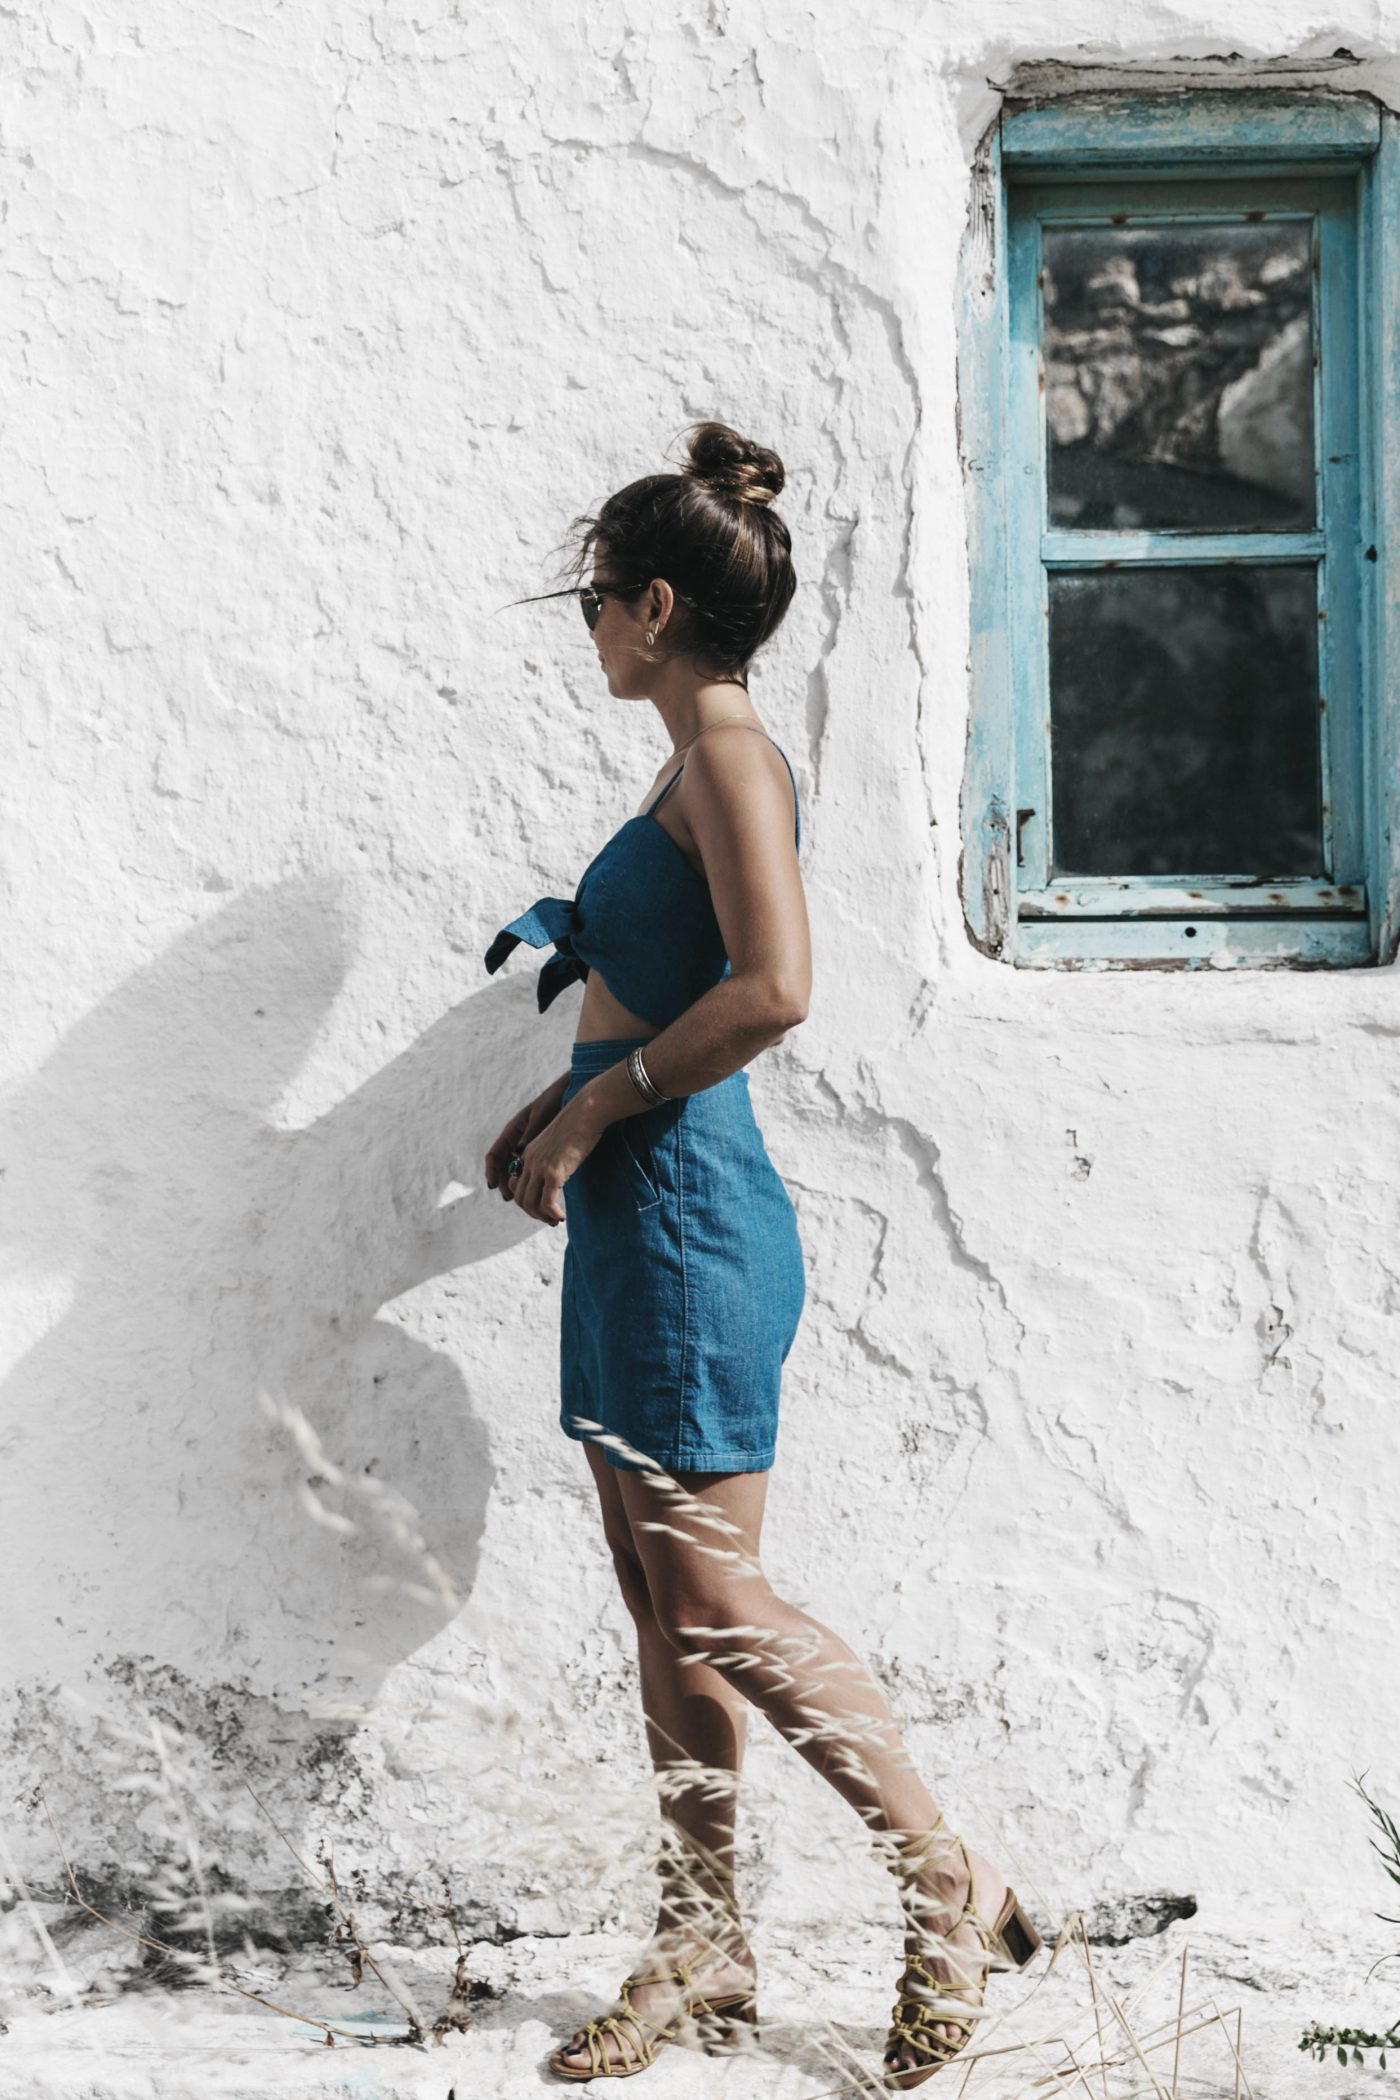 Topshop_Festival-Denim_Cut_Out_Dress-Yellow_Sandals-Outfit-Topknot-Mikonos-Street_Style-25